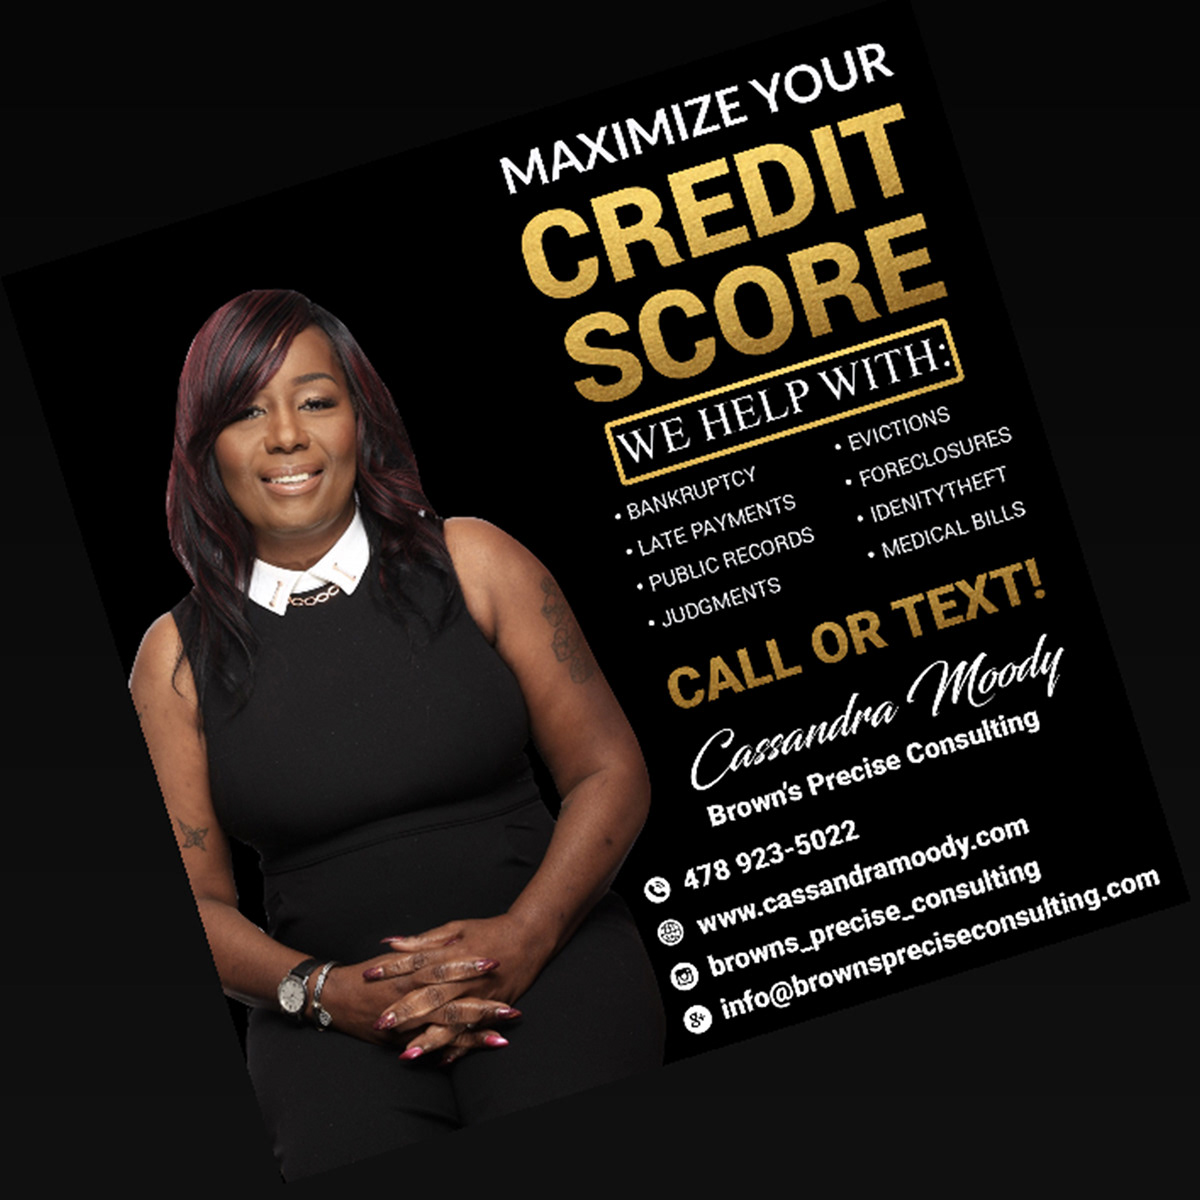 I Will Create Credit Repair Flyer Business Flyer On Wacom